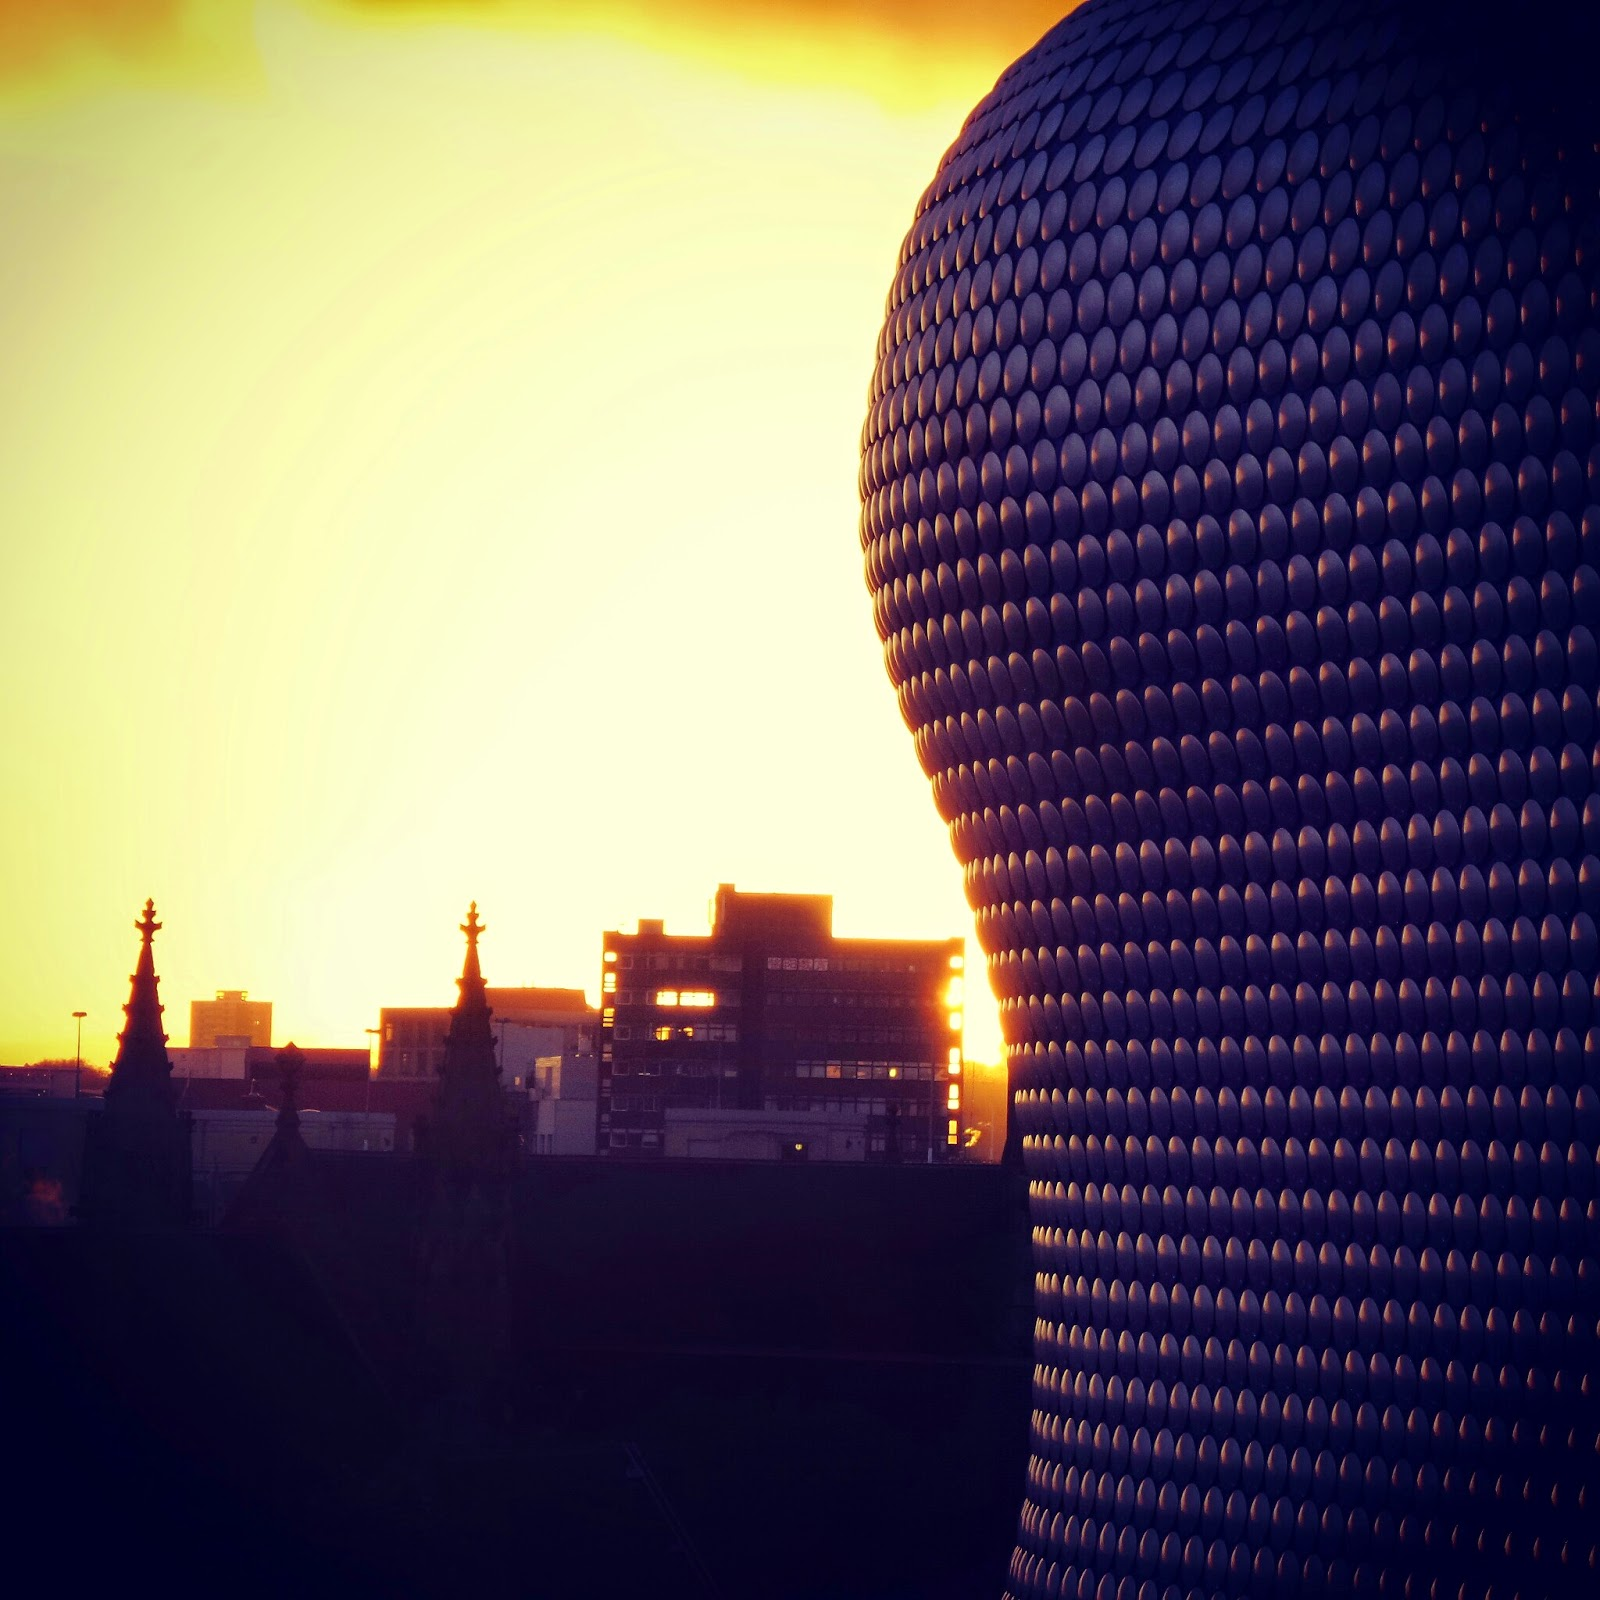 Birmingham at Sunset